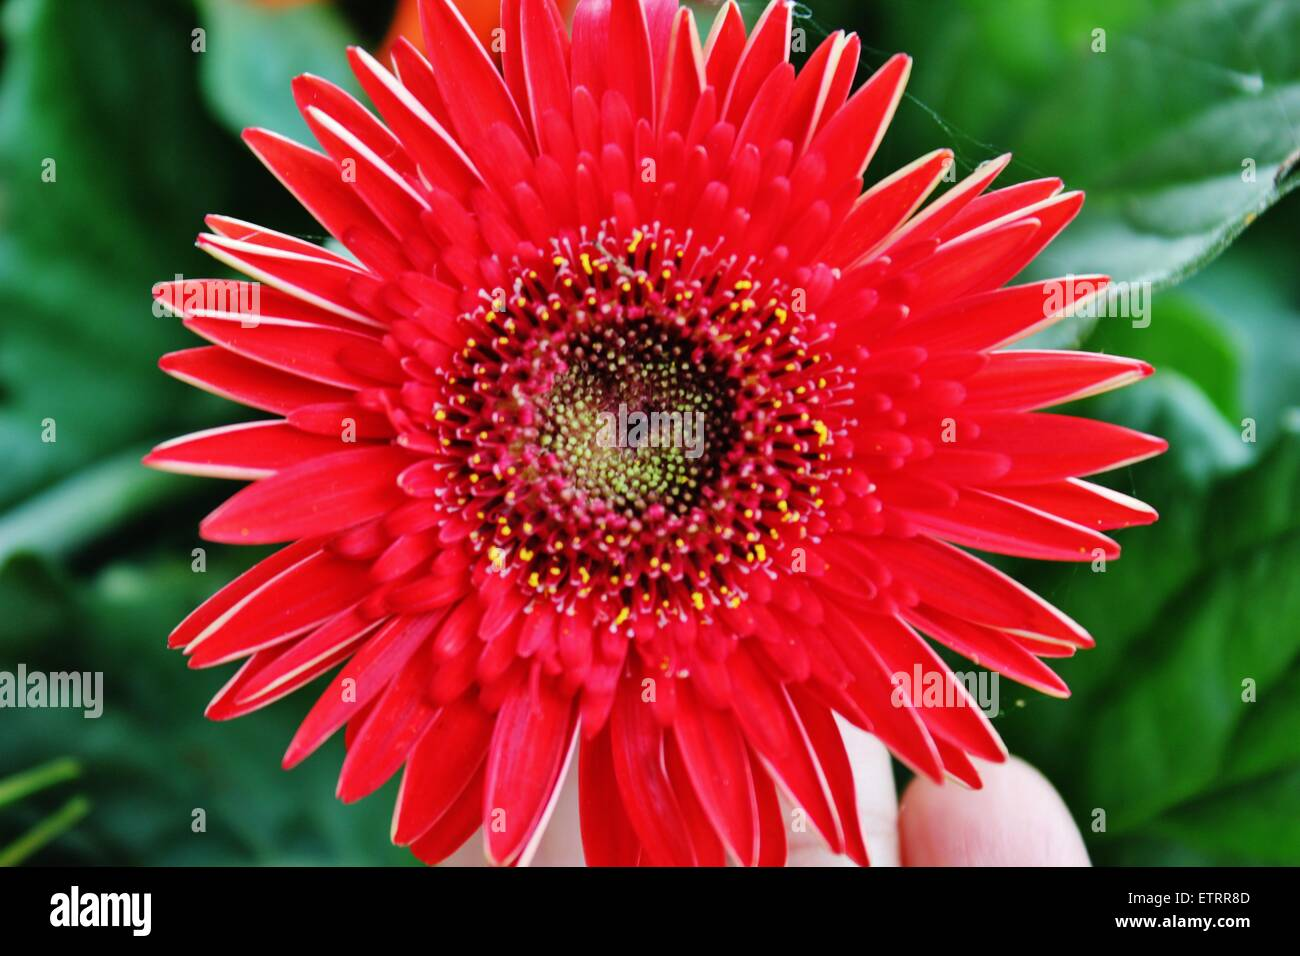 A beautiful red flower in central florida stock photo 84116381 alamy a beautiful red flower in central florida izmirmasajfo